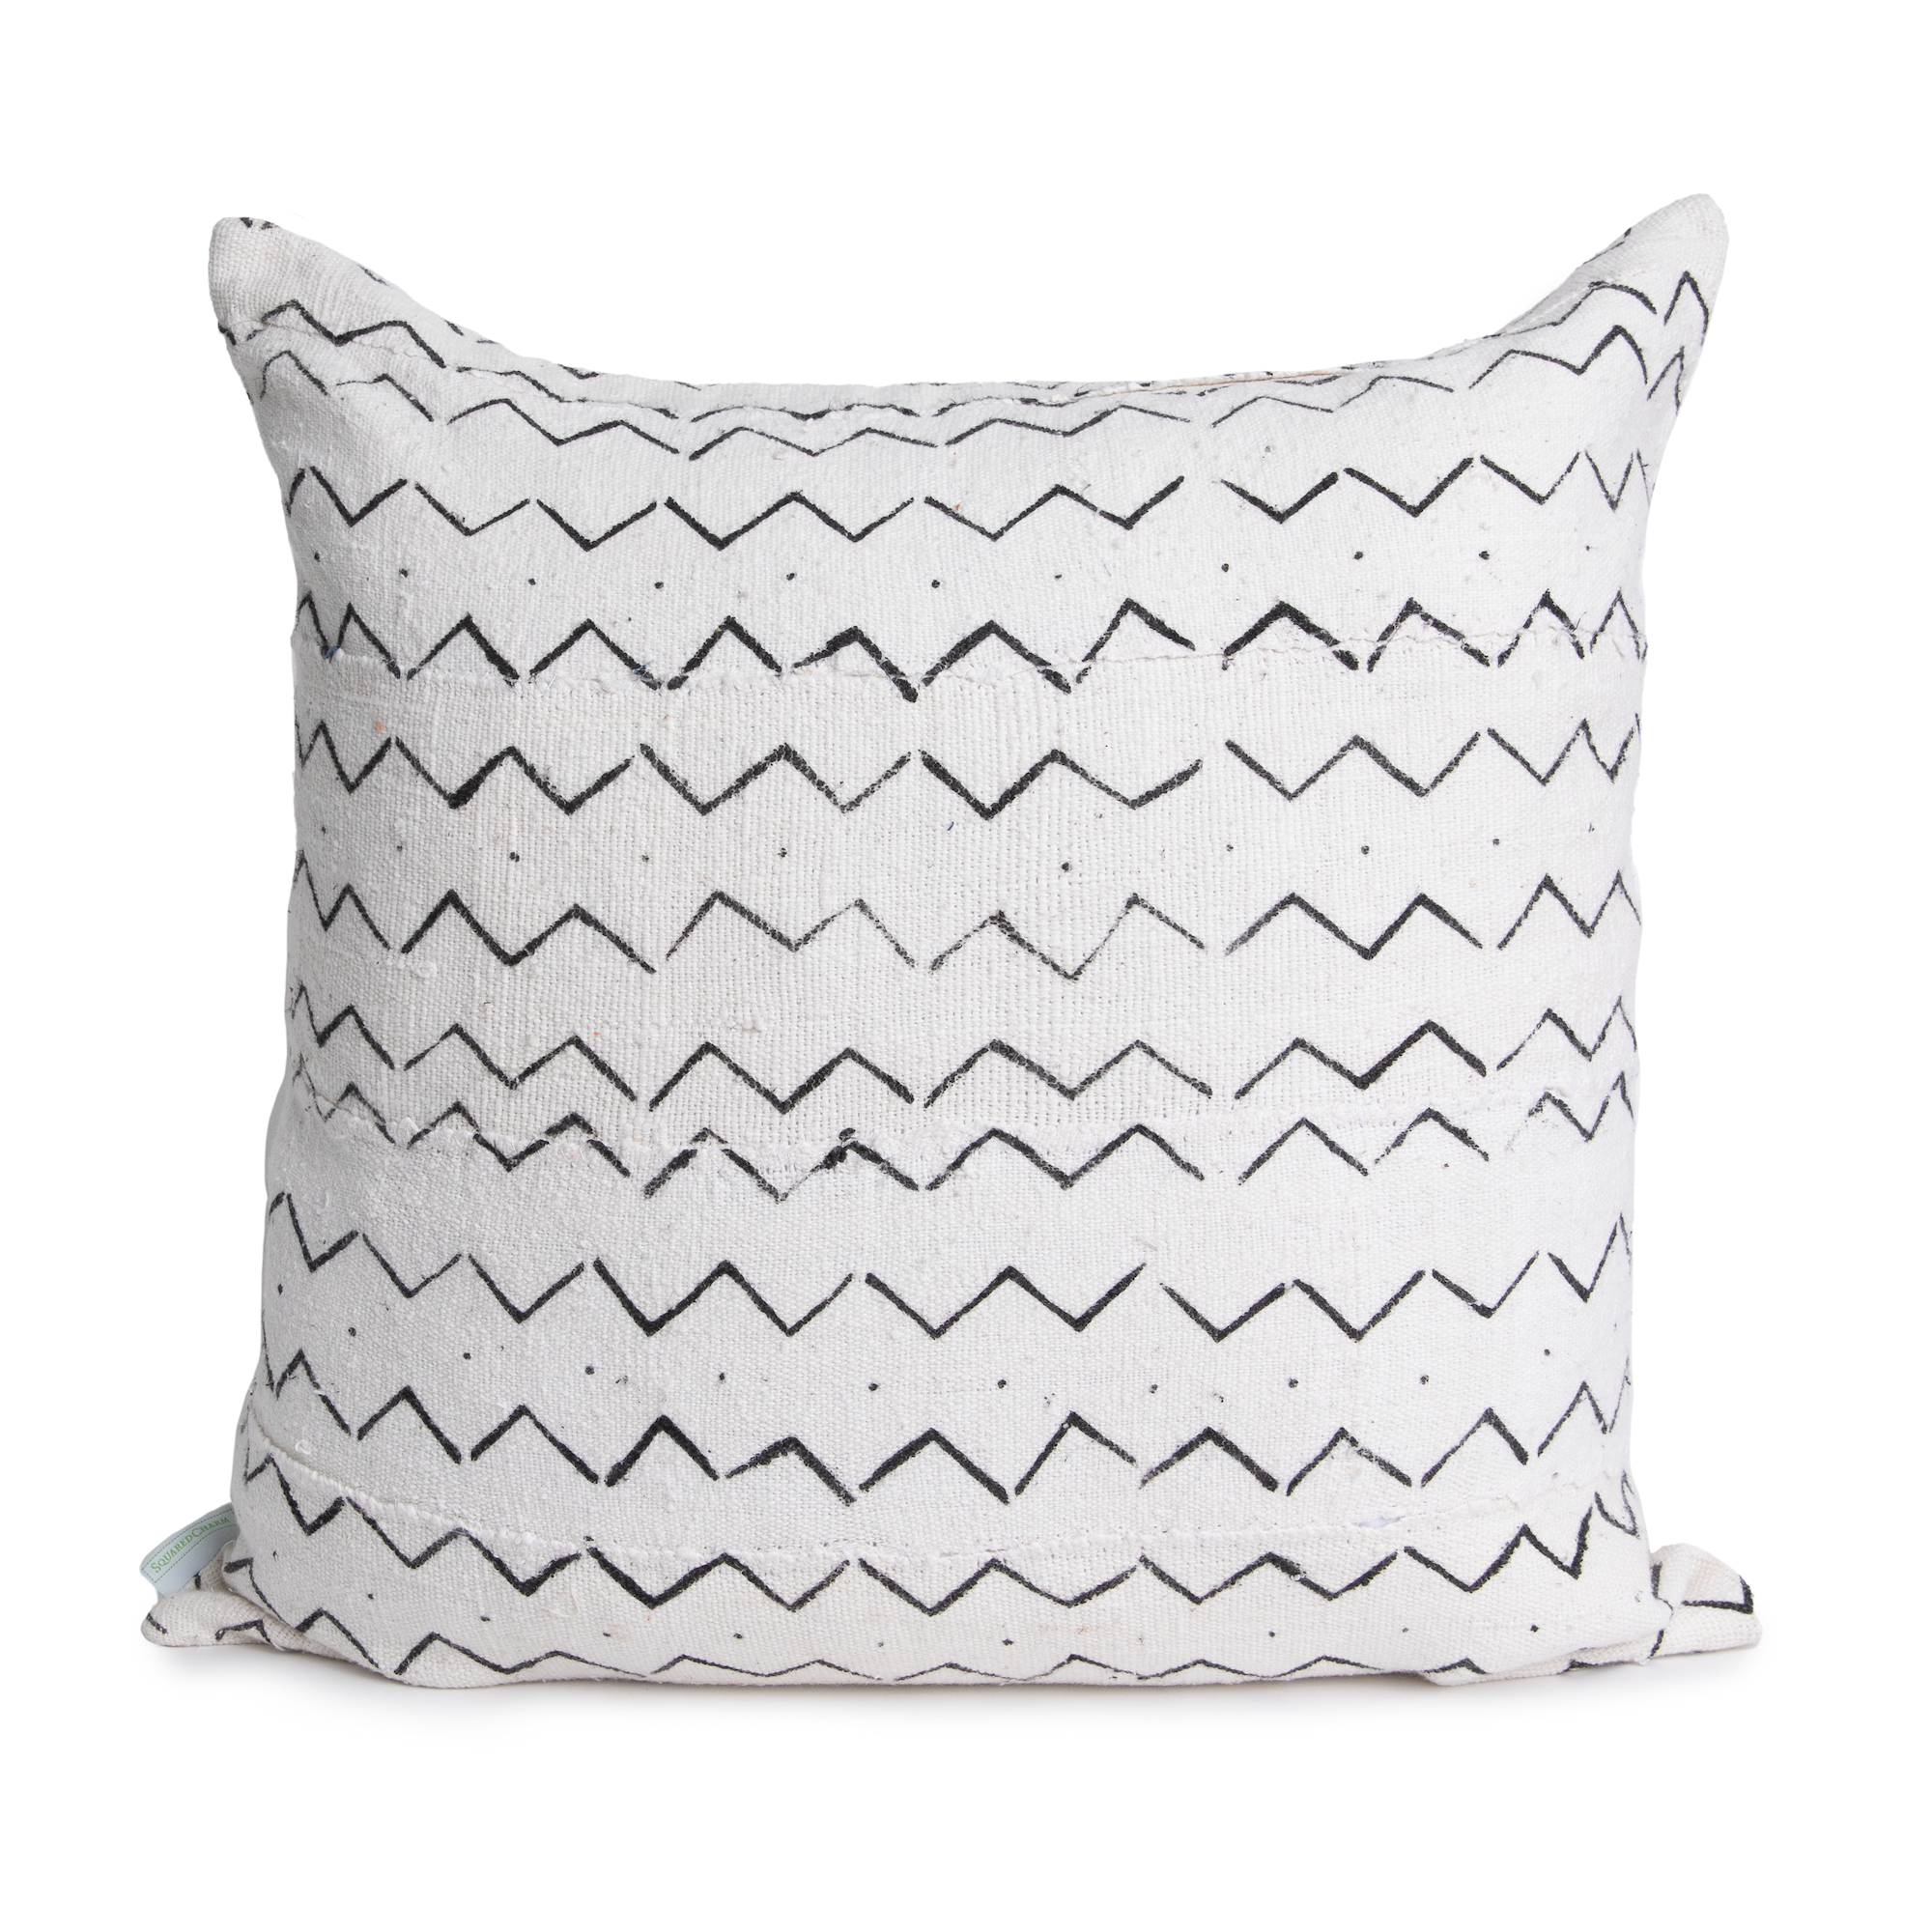 Tiffany | Mud Cloth Pillow Cover | Limited Edition